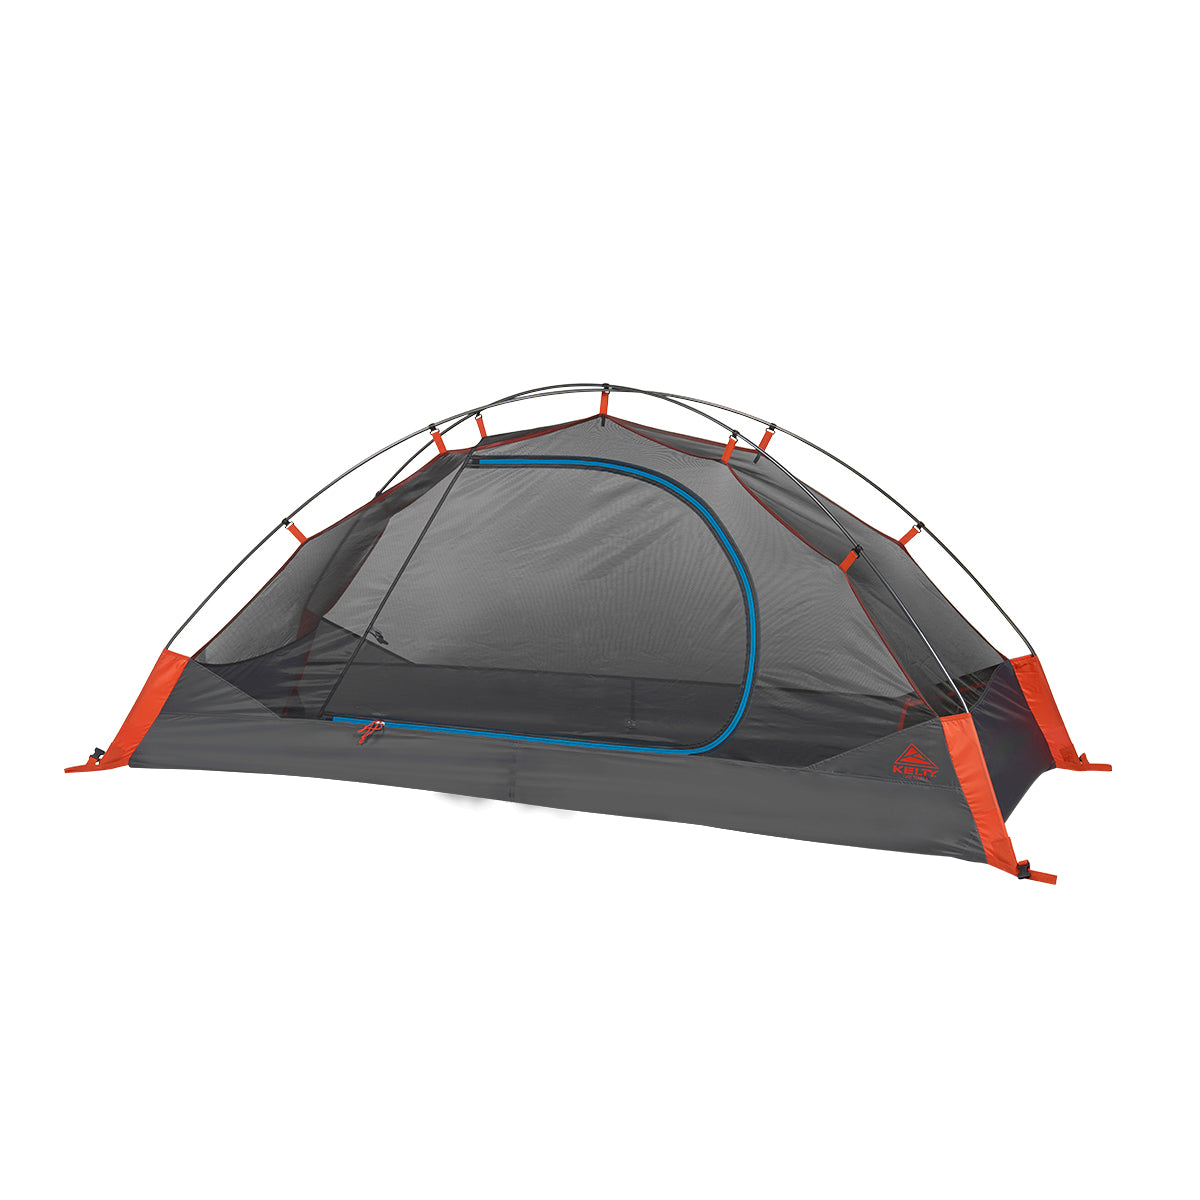 kelty late start 1 person tent without fly in color grey with orange and blue details